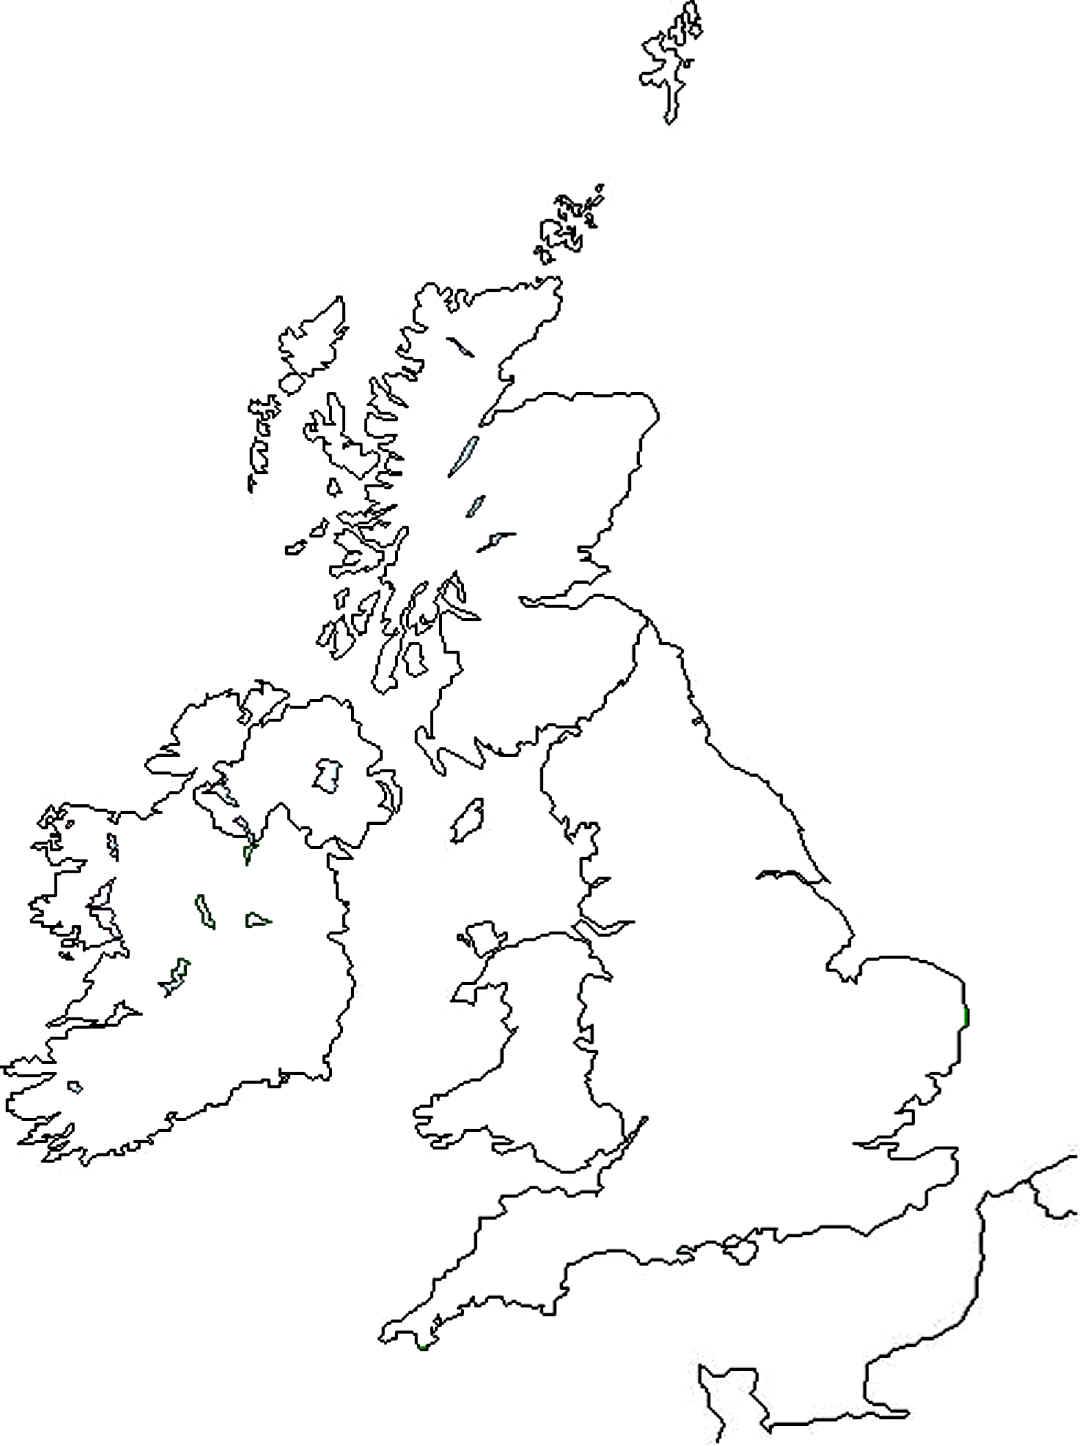 Blank united kingdom clipart map clip freeuse library Blank united kingdom clipart map - ClipartFest clip freeuse library